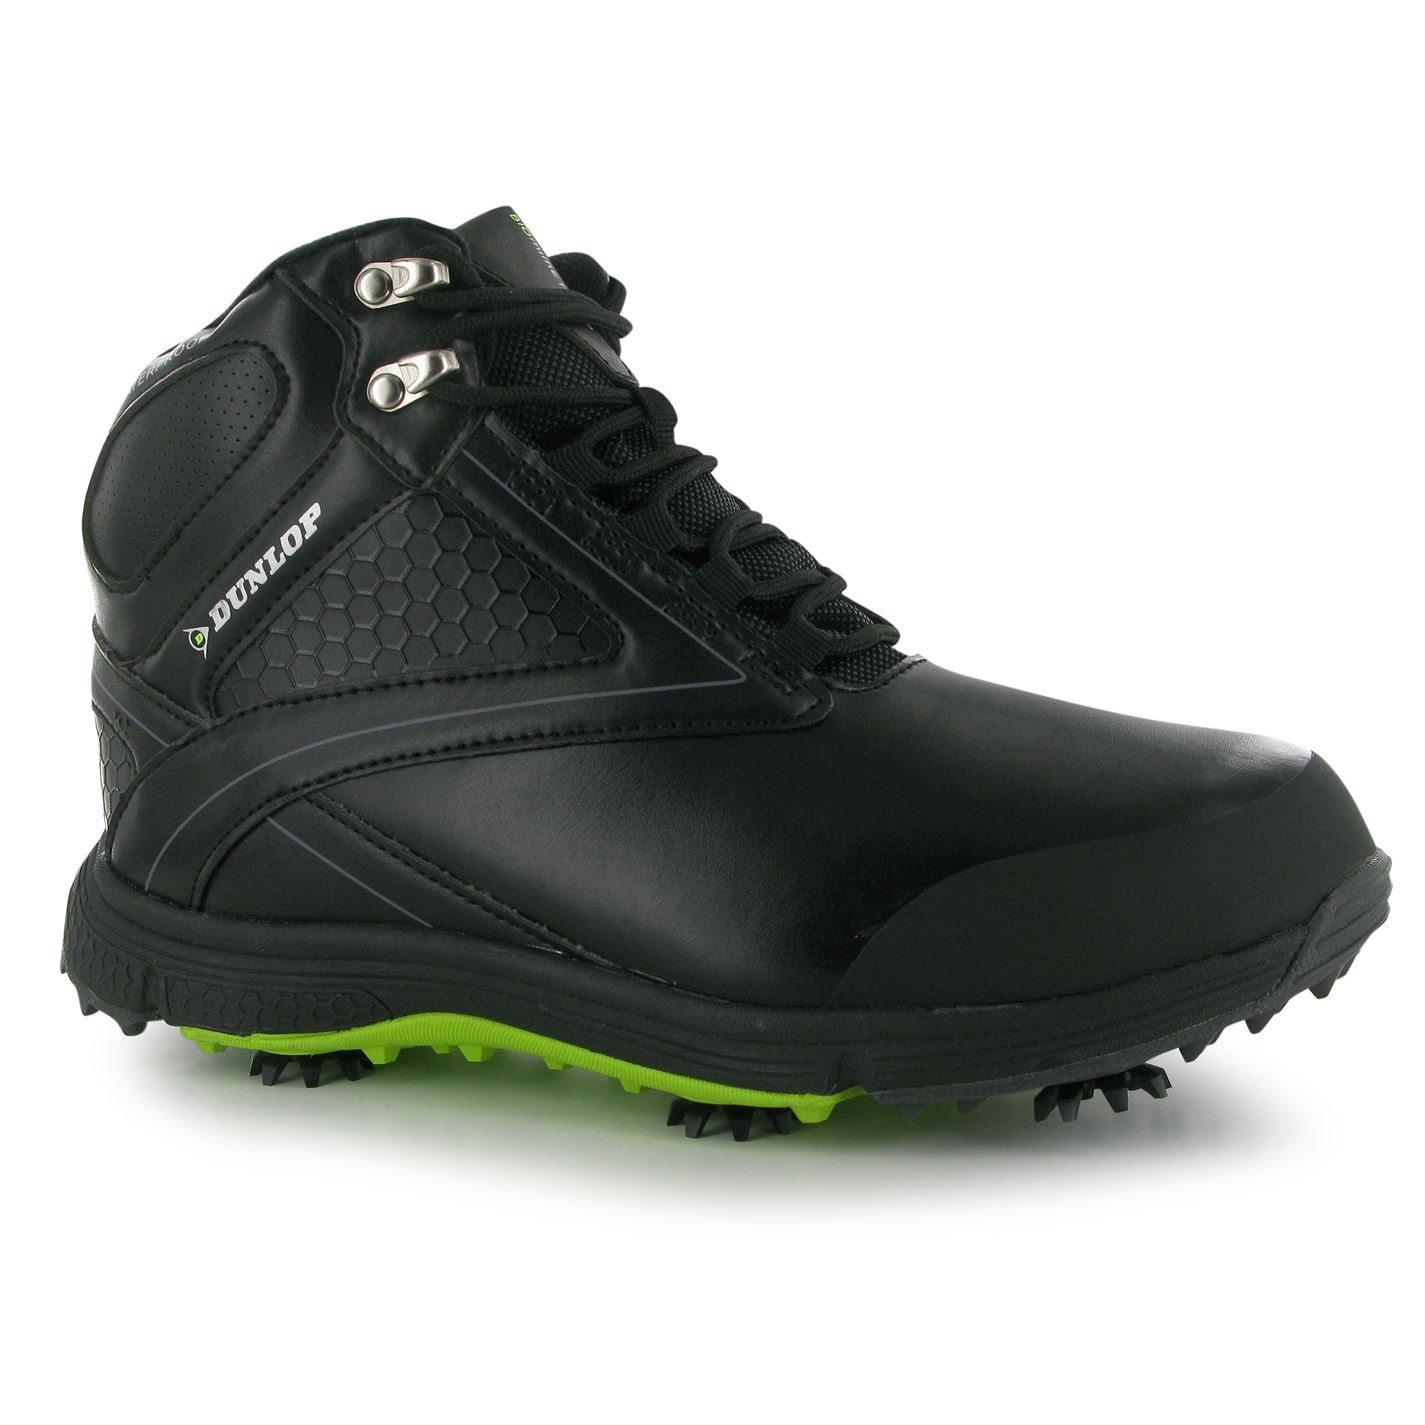 Screw In Cleats For Dunlop Golf Shoes